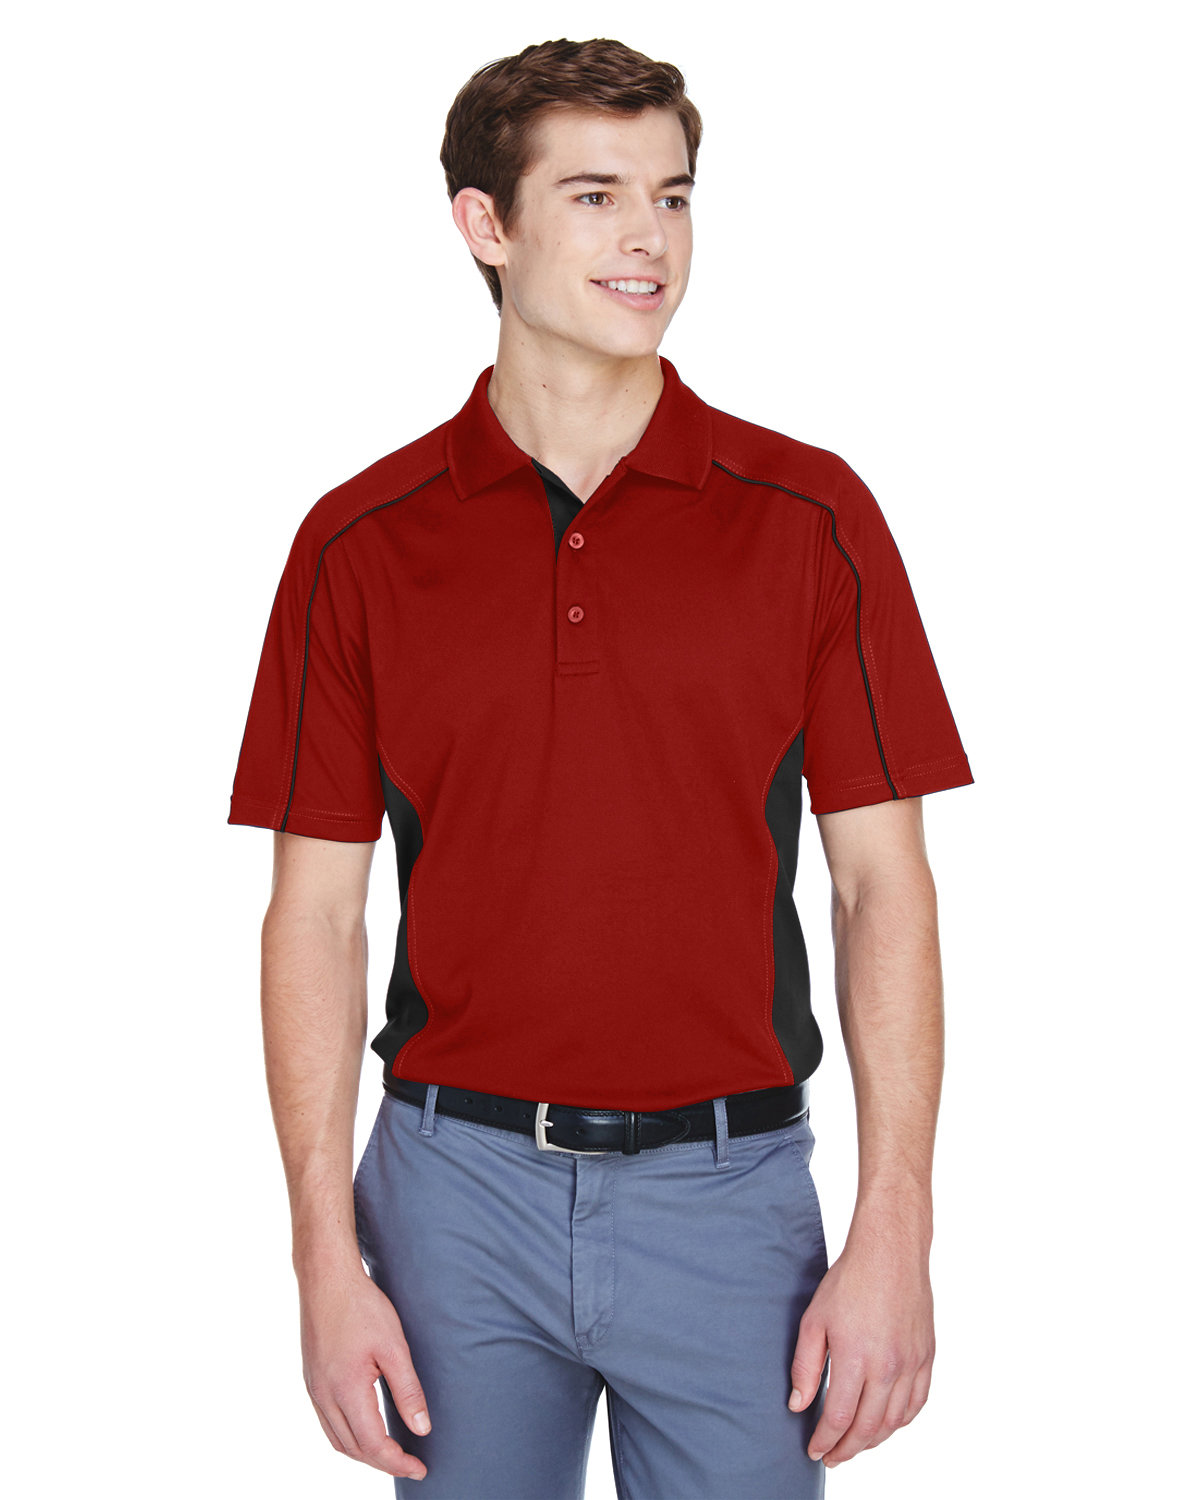 Extreme Men's Eperformance™ Fuse Snag Protection Plus Colorblock Polo CLASSIC RED/ BLK